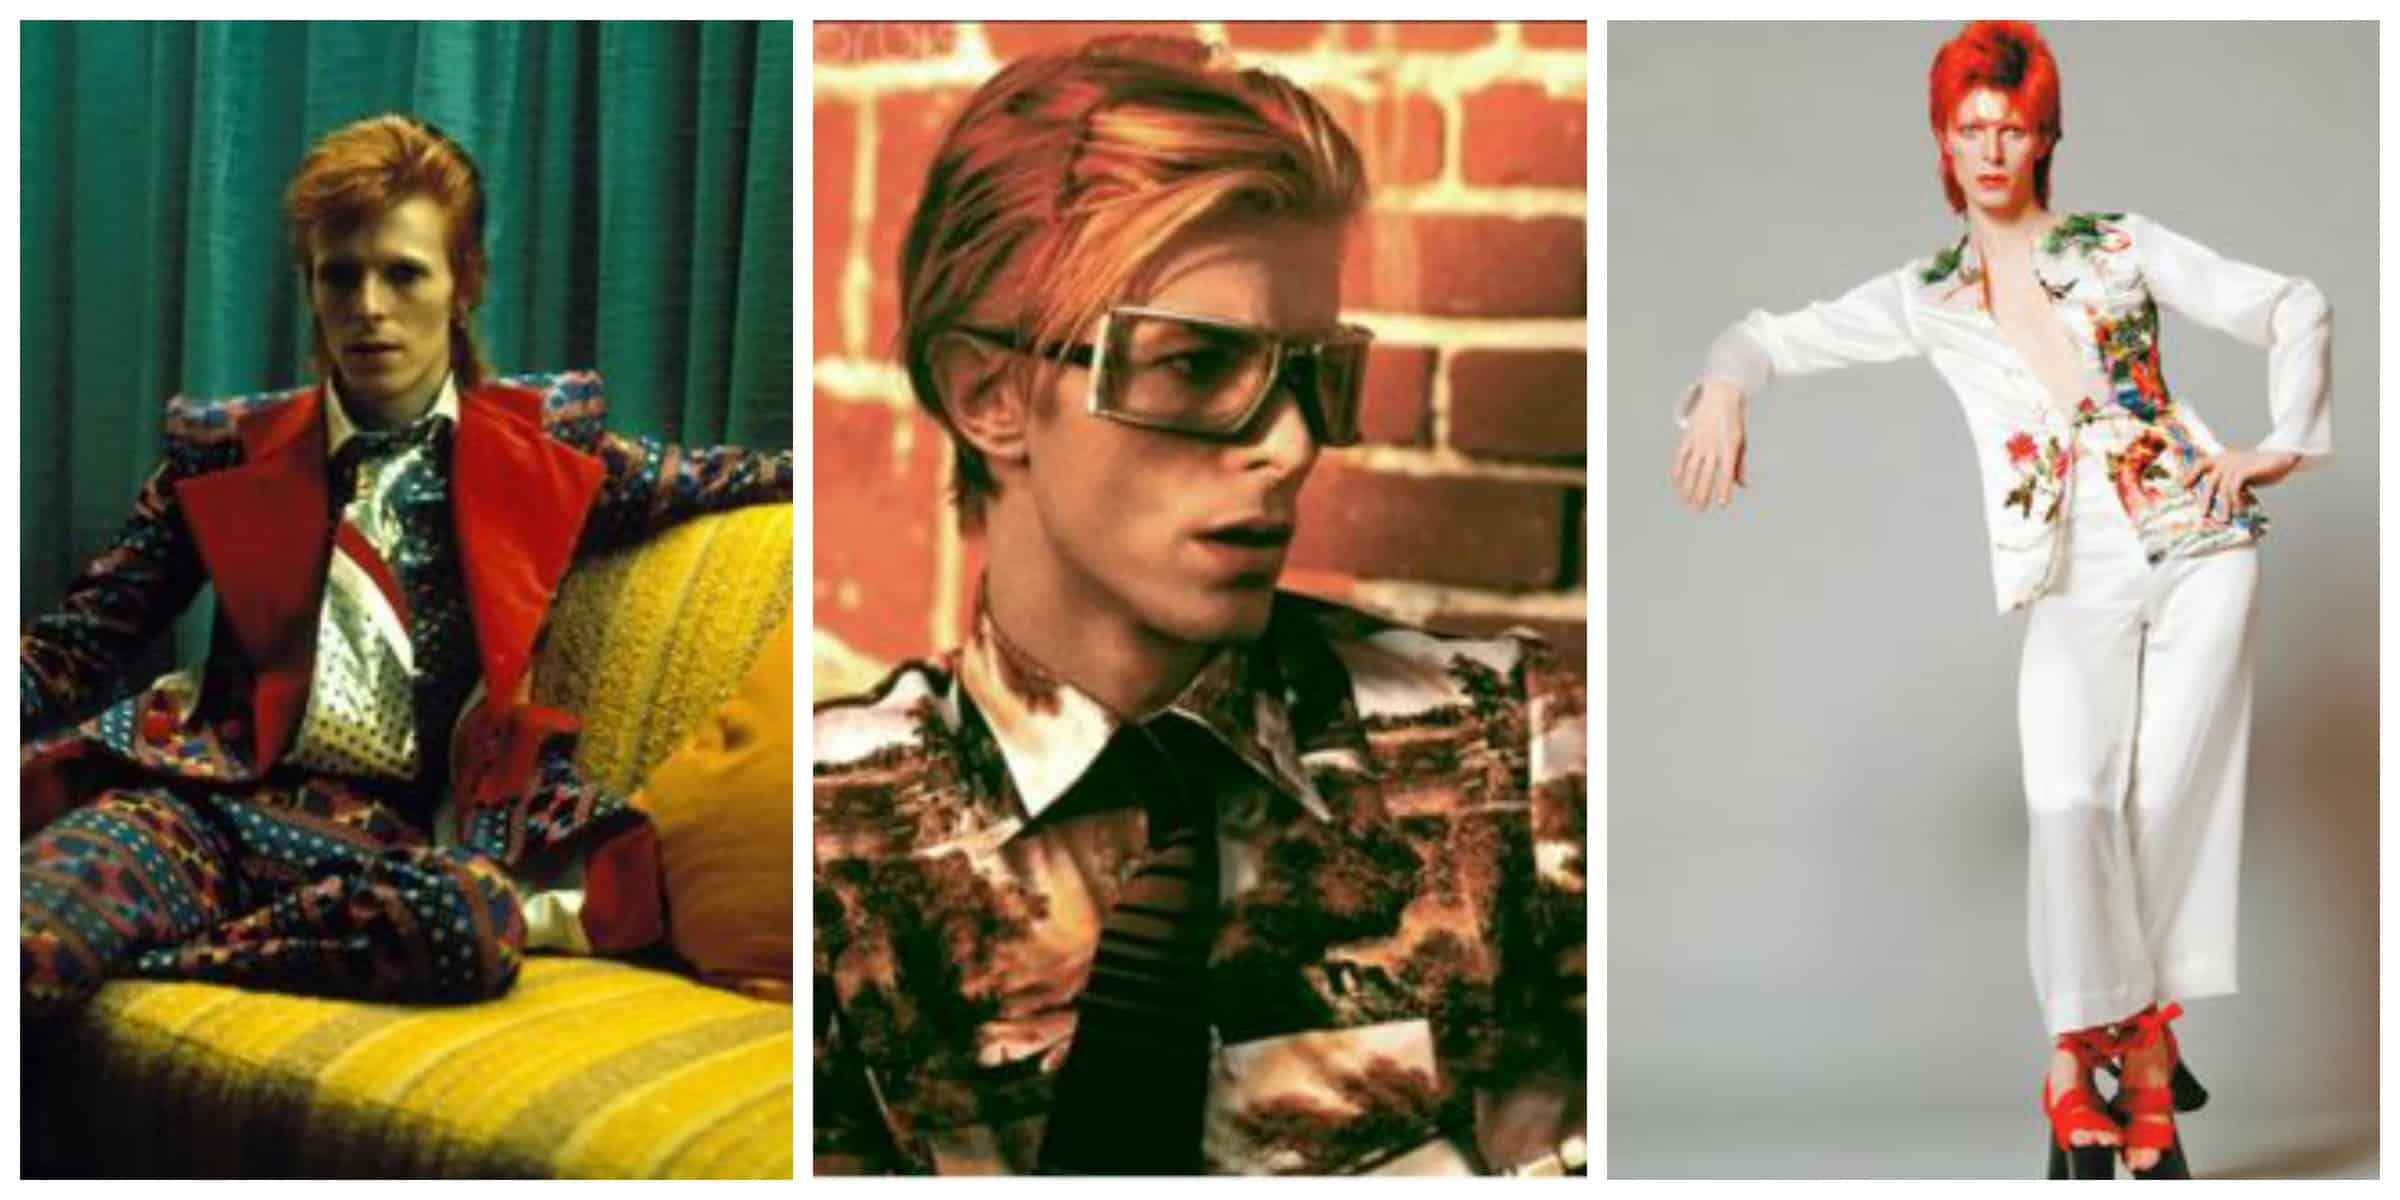 style-icon-david-bowie